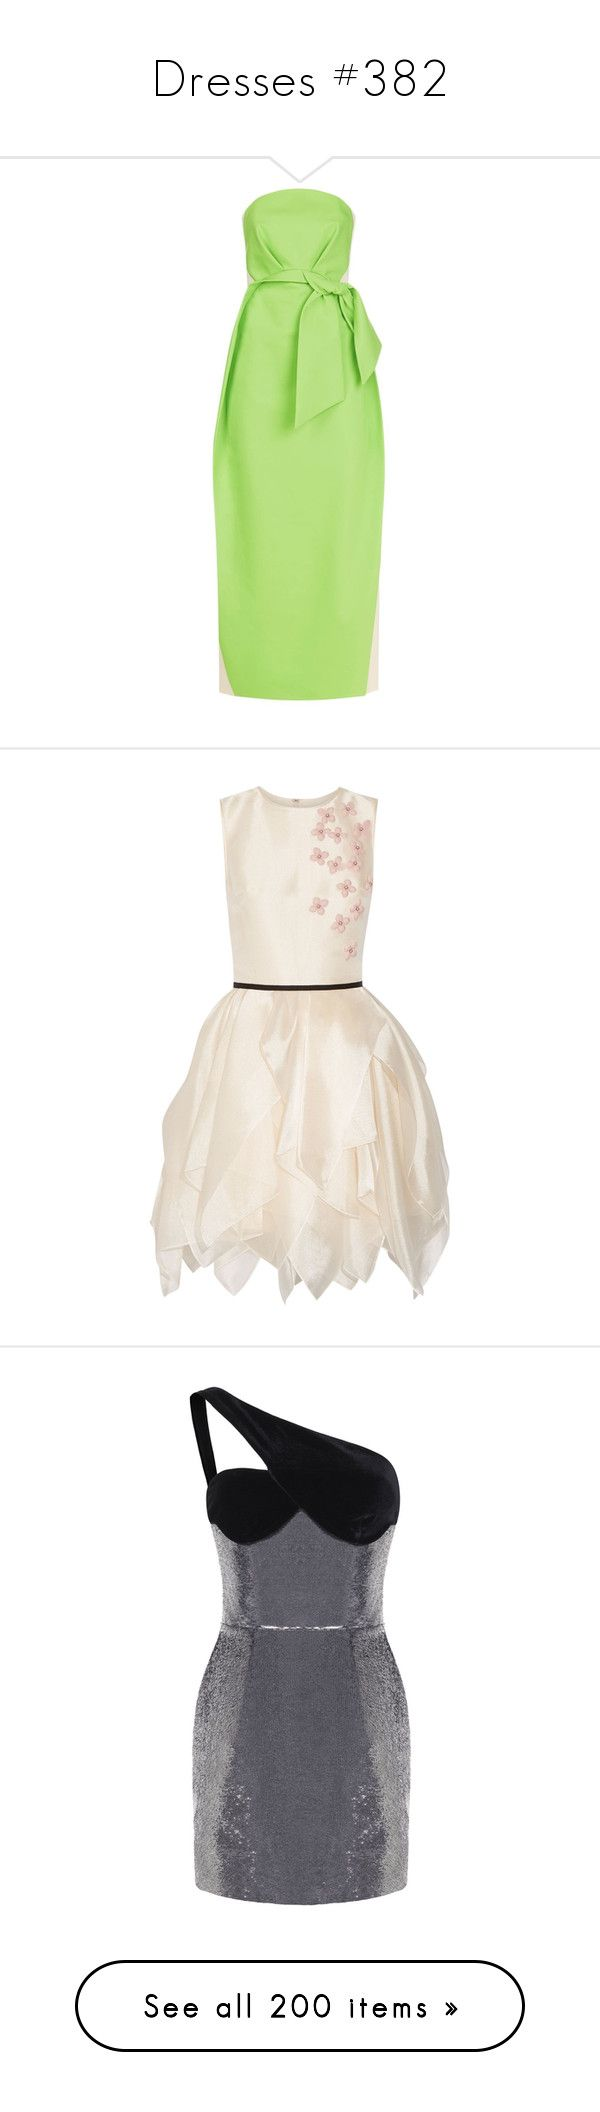 """""""Dresses #382"""" by bliznec ❤ liked on Polyvore featuring dresses, strapless midi dress, oversized dress, green color block dress, midi day dresses, structured dress, white dresses, pink floral dress, cream dress and short dresses"""